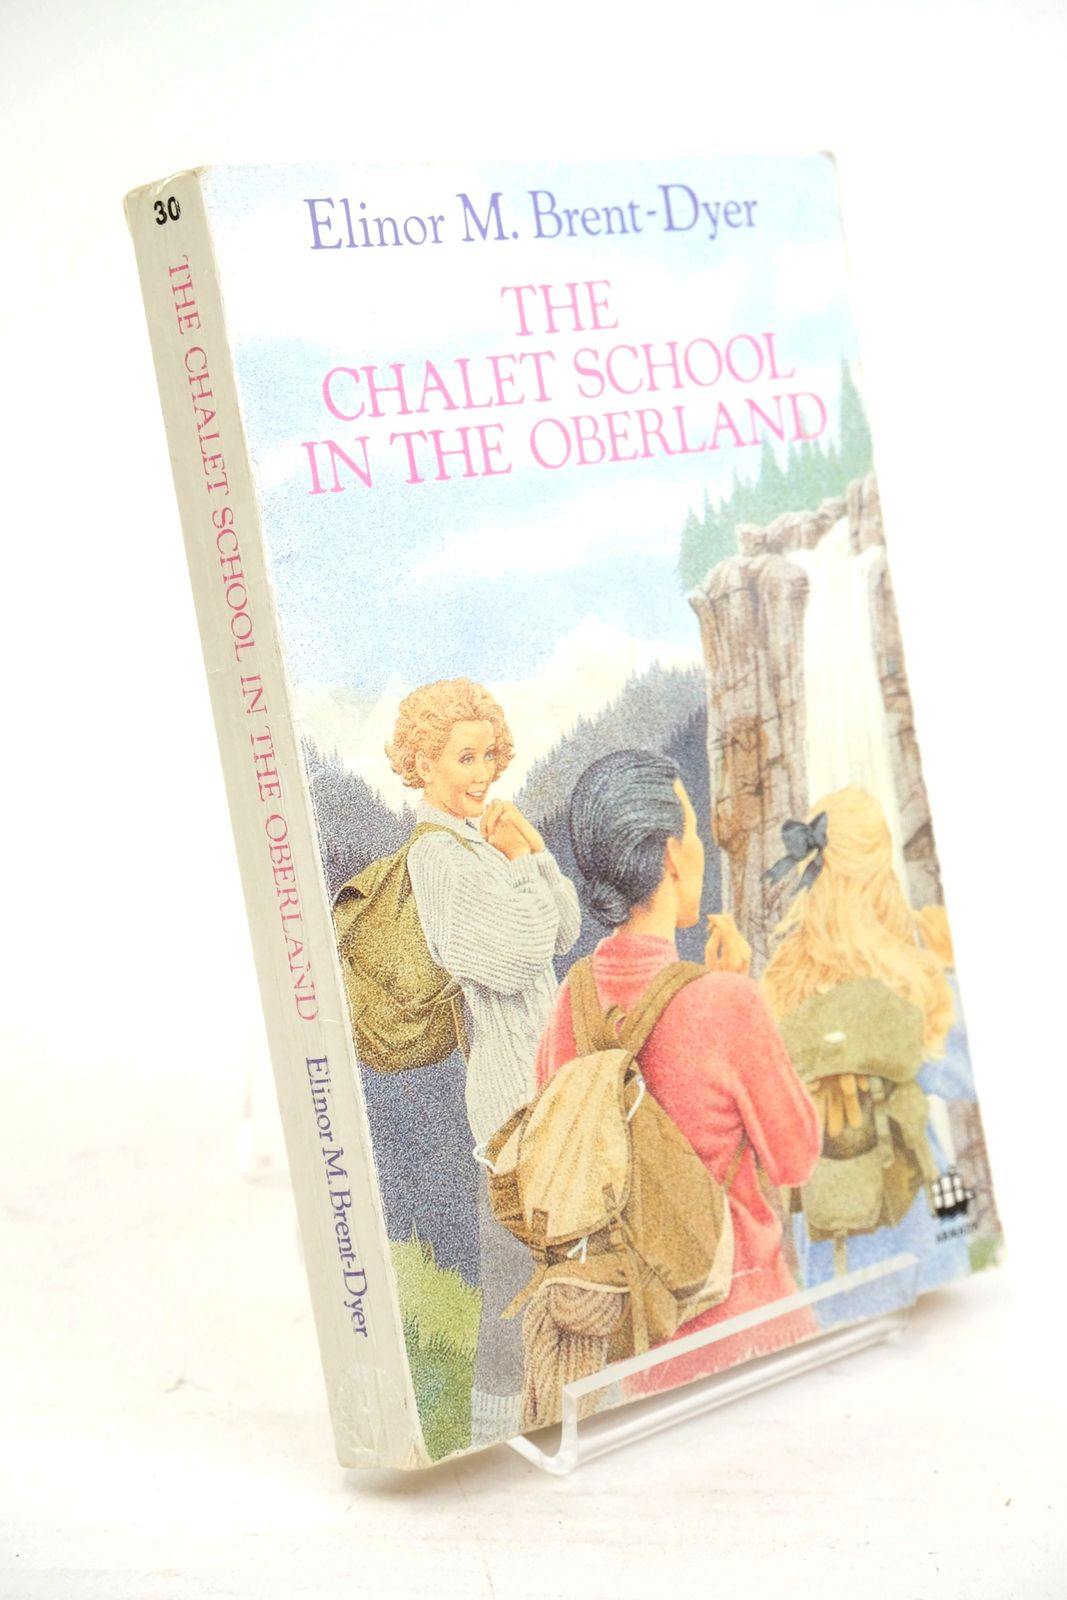 Photo of THE CHALET SCHOOL IN THE OBERLAND written by Brent-Dyer, Elinor M. published by Armada (STOCK CODE: 1320108)  for sale by Stella & Rose's Books